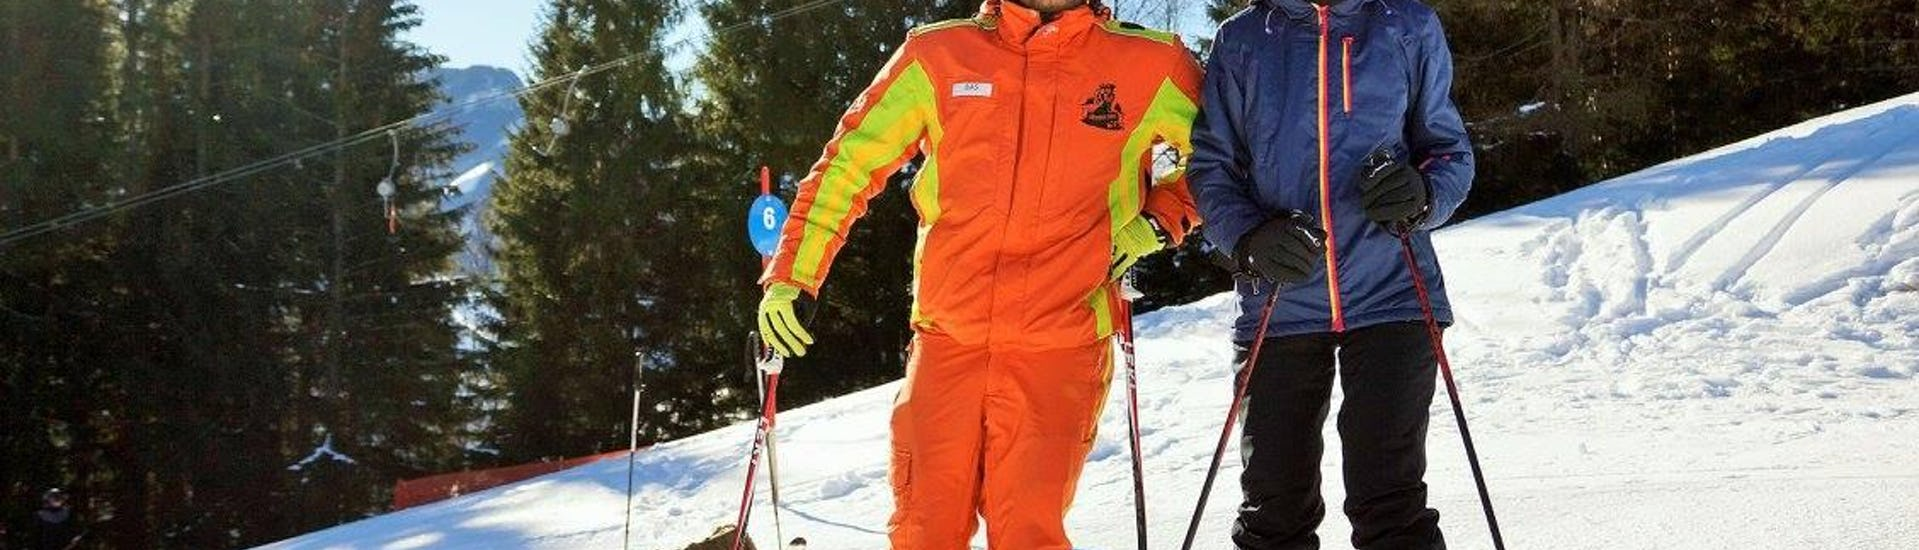 Ski Instructor Private for Kids or Adults - February